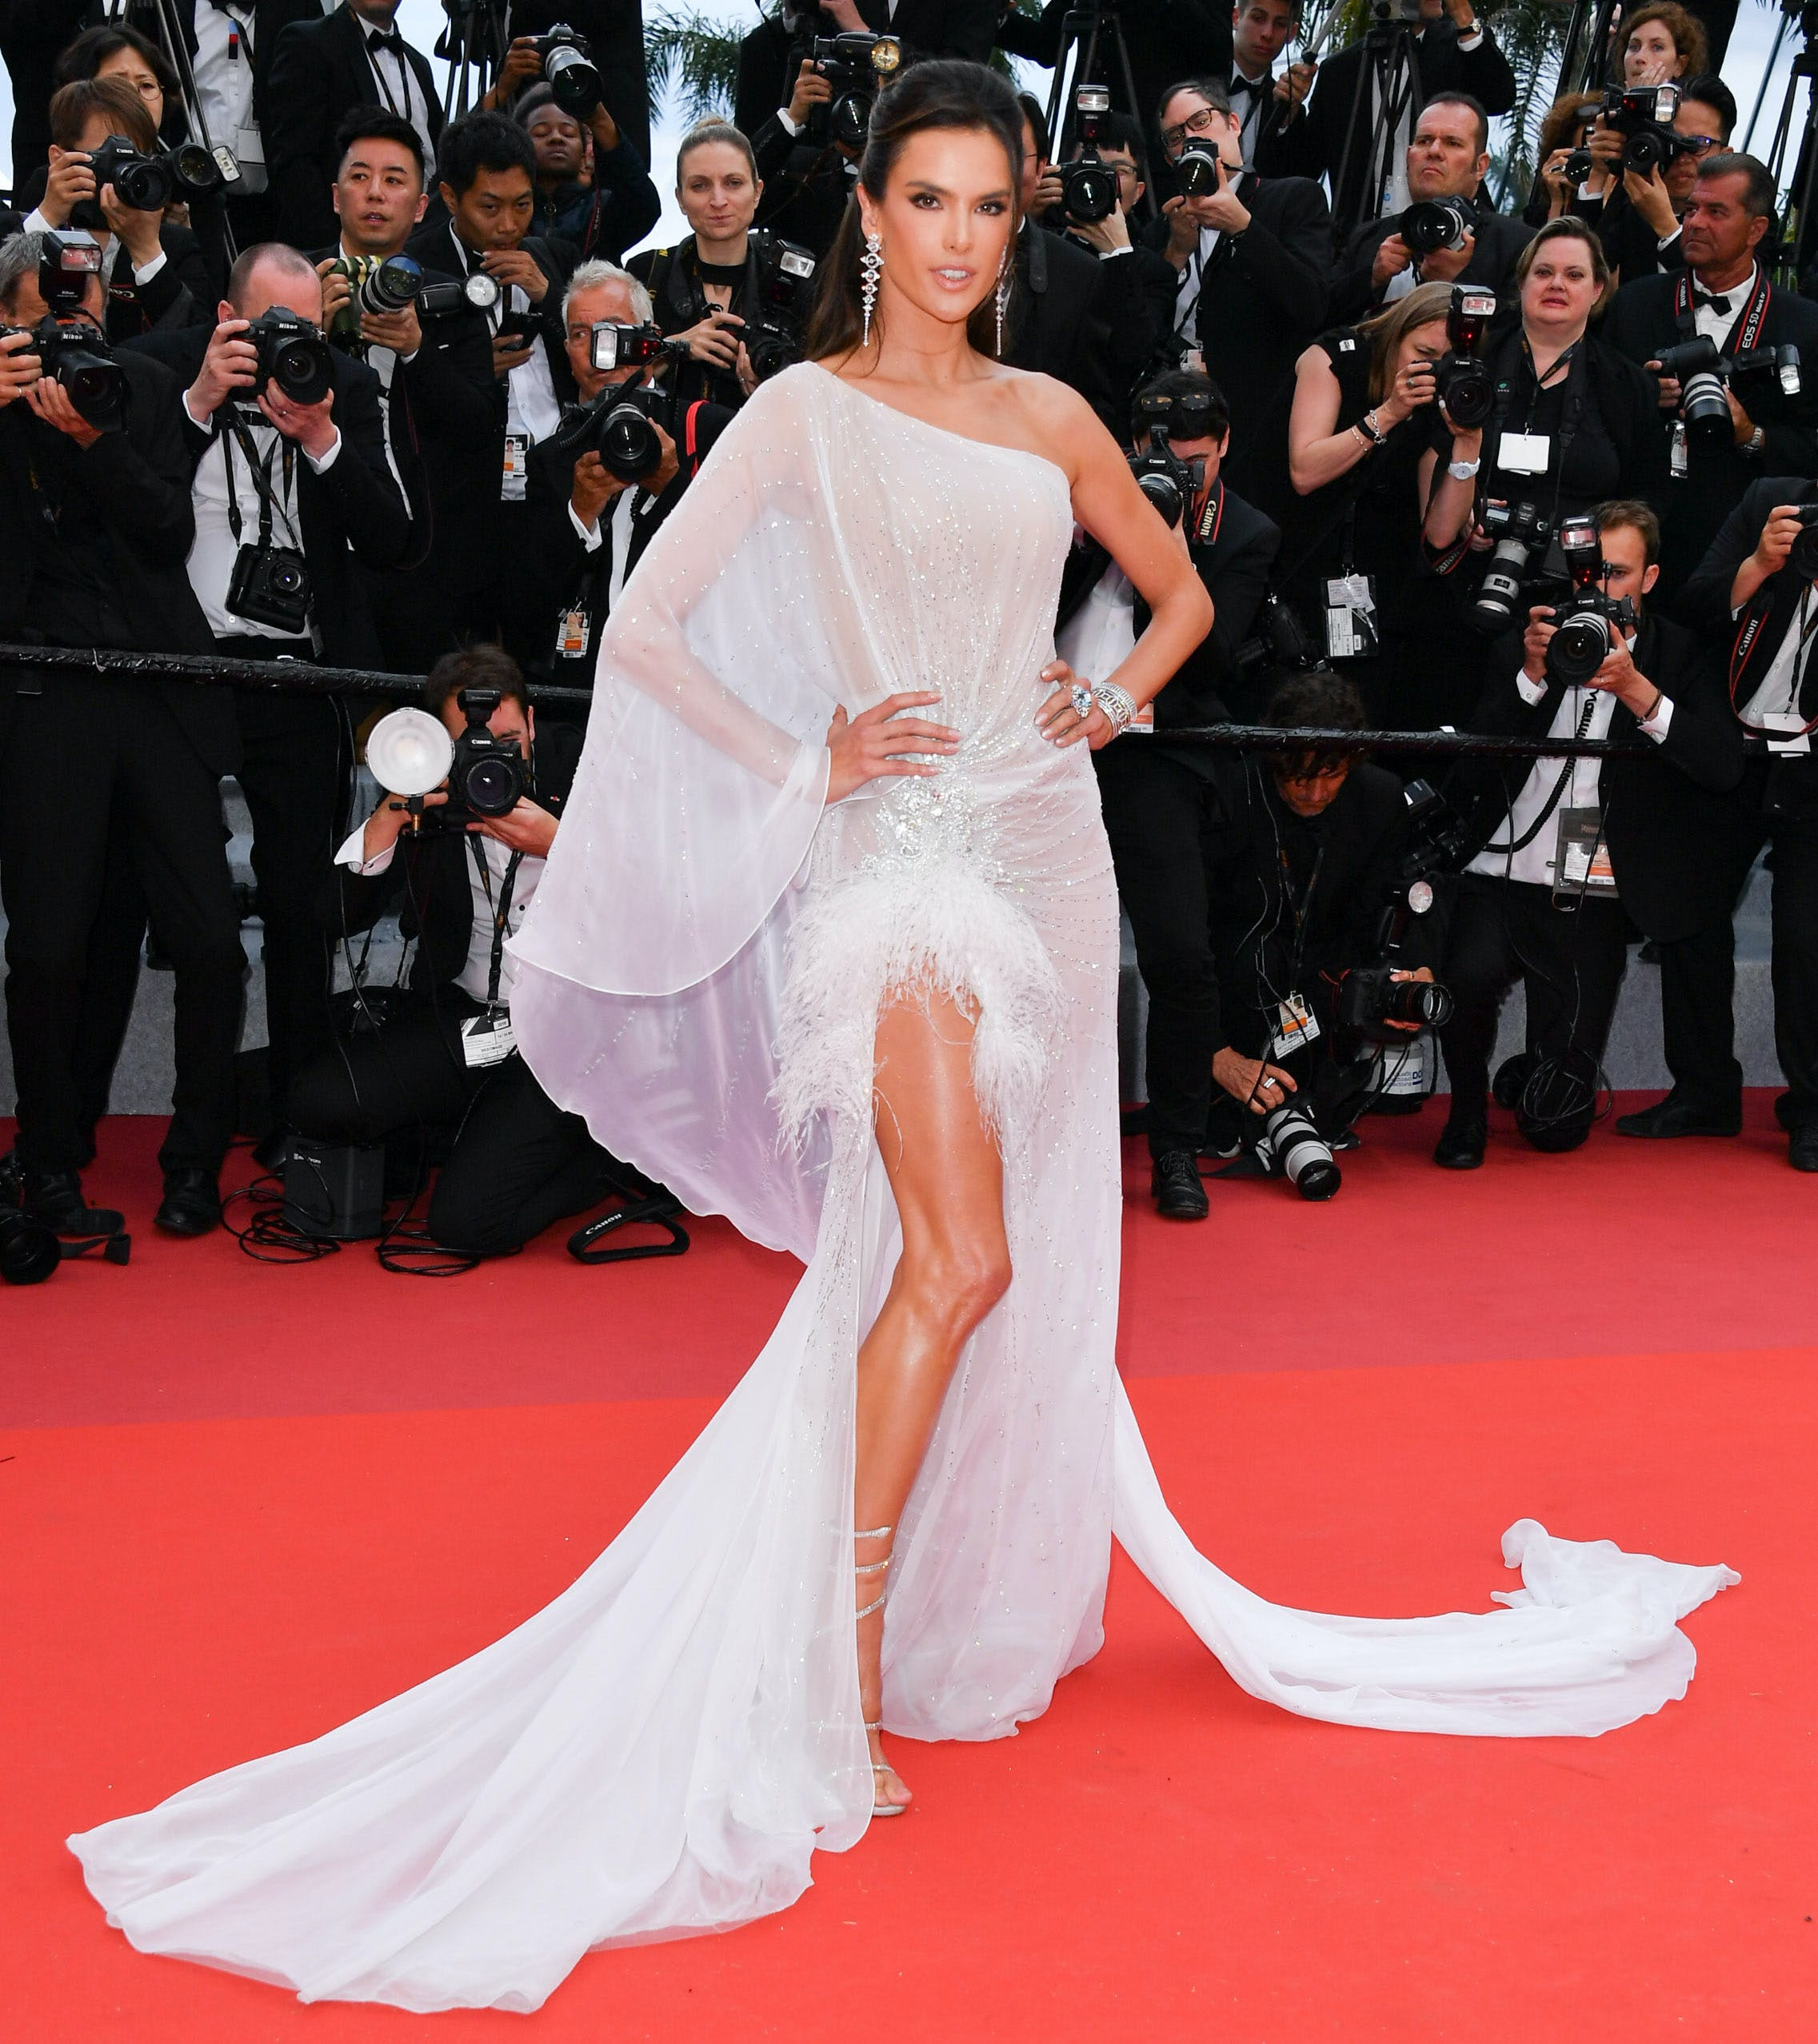 Alessandra Ambrosio at the 72nd annual Cannes Film Festival